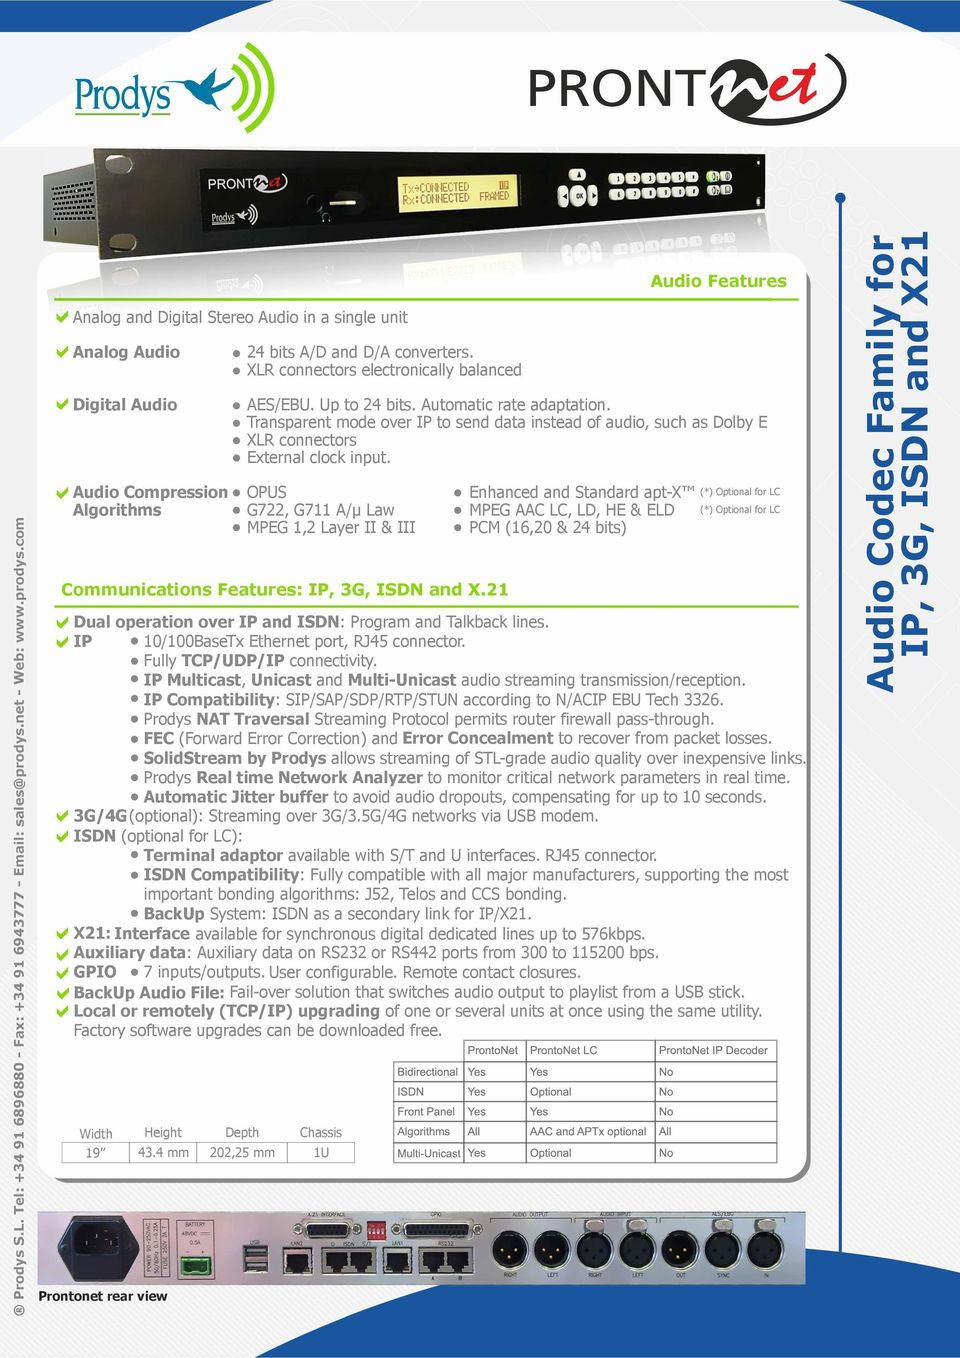 OPUS Enhanced and Standard apt-x G722, G711 A/µ Law MPEG AAC LC, LD, HE & ELD MPEG 1,2 Layer II & III PCM (16,20 & 24 bits) Communications Features:, 3G, ISDN and X.